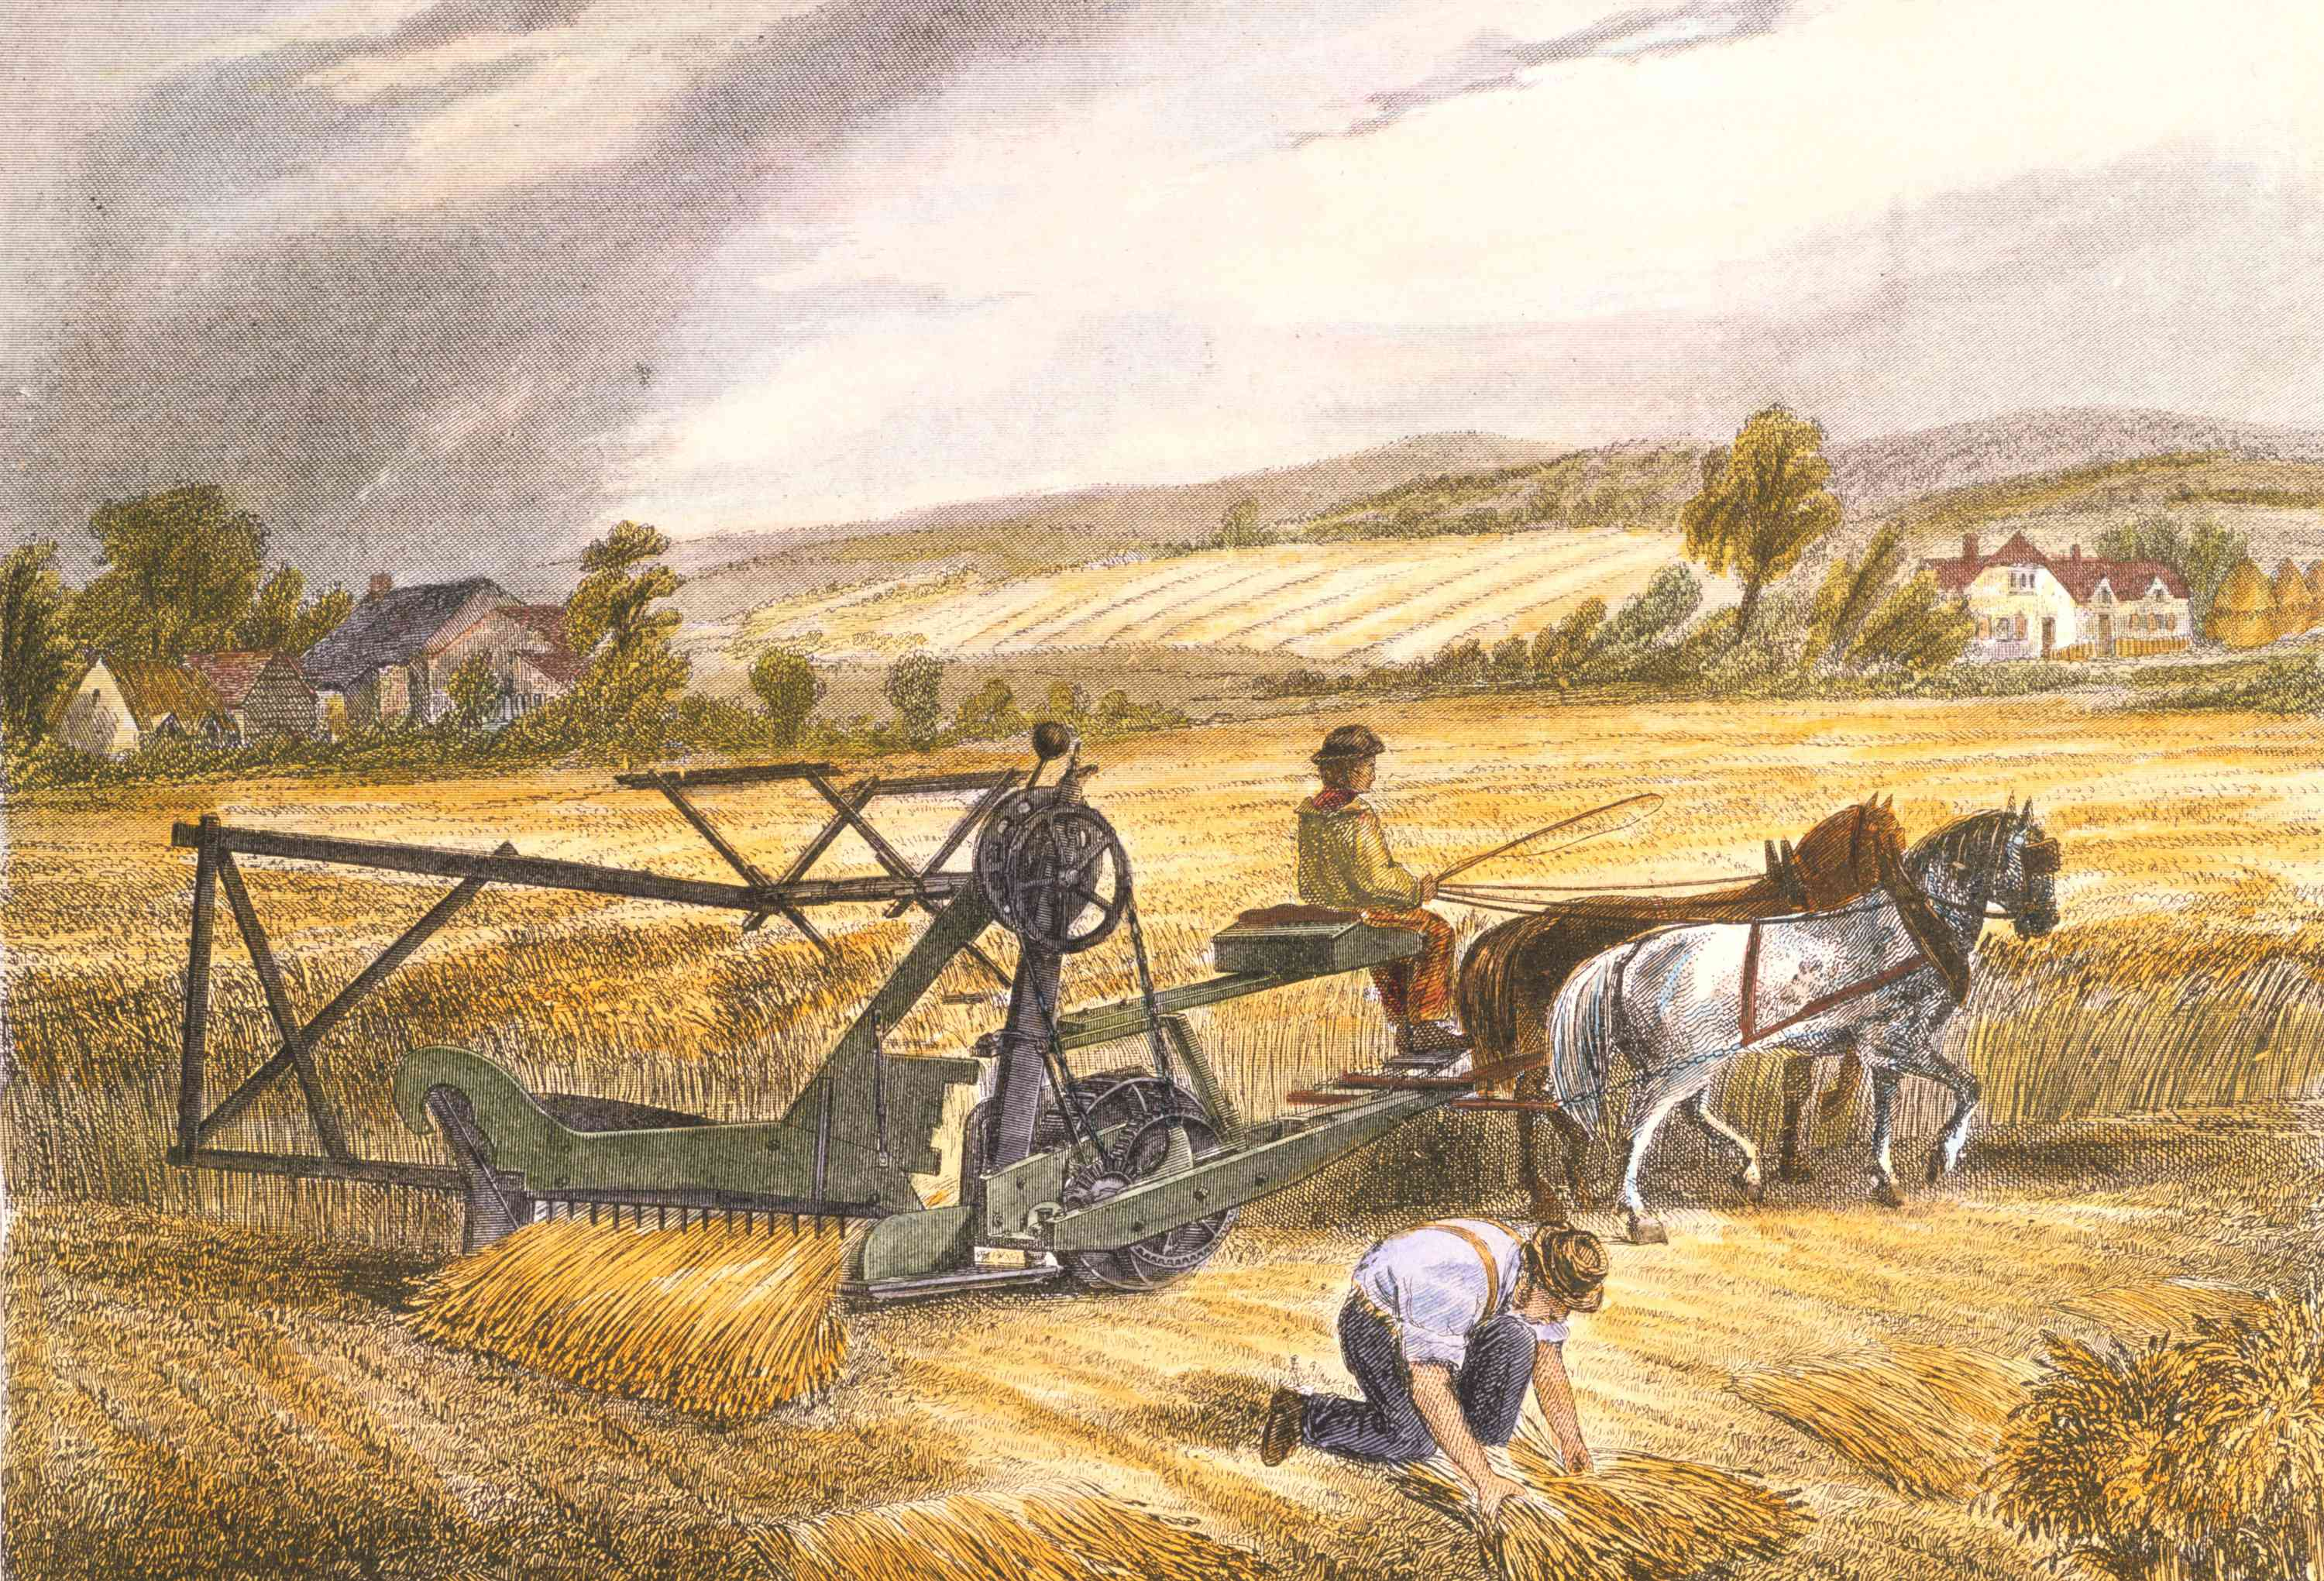 Lithograph of the McCormick Reaper